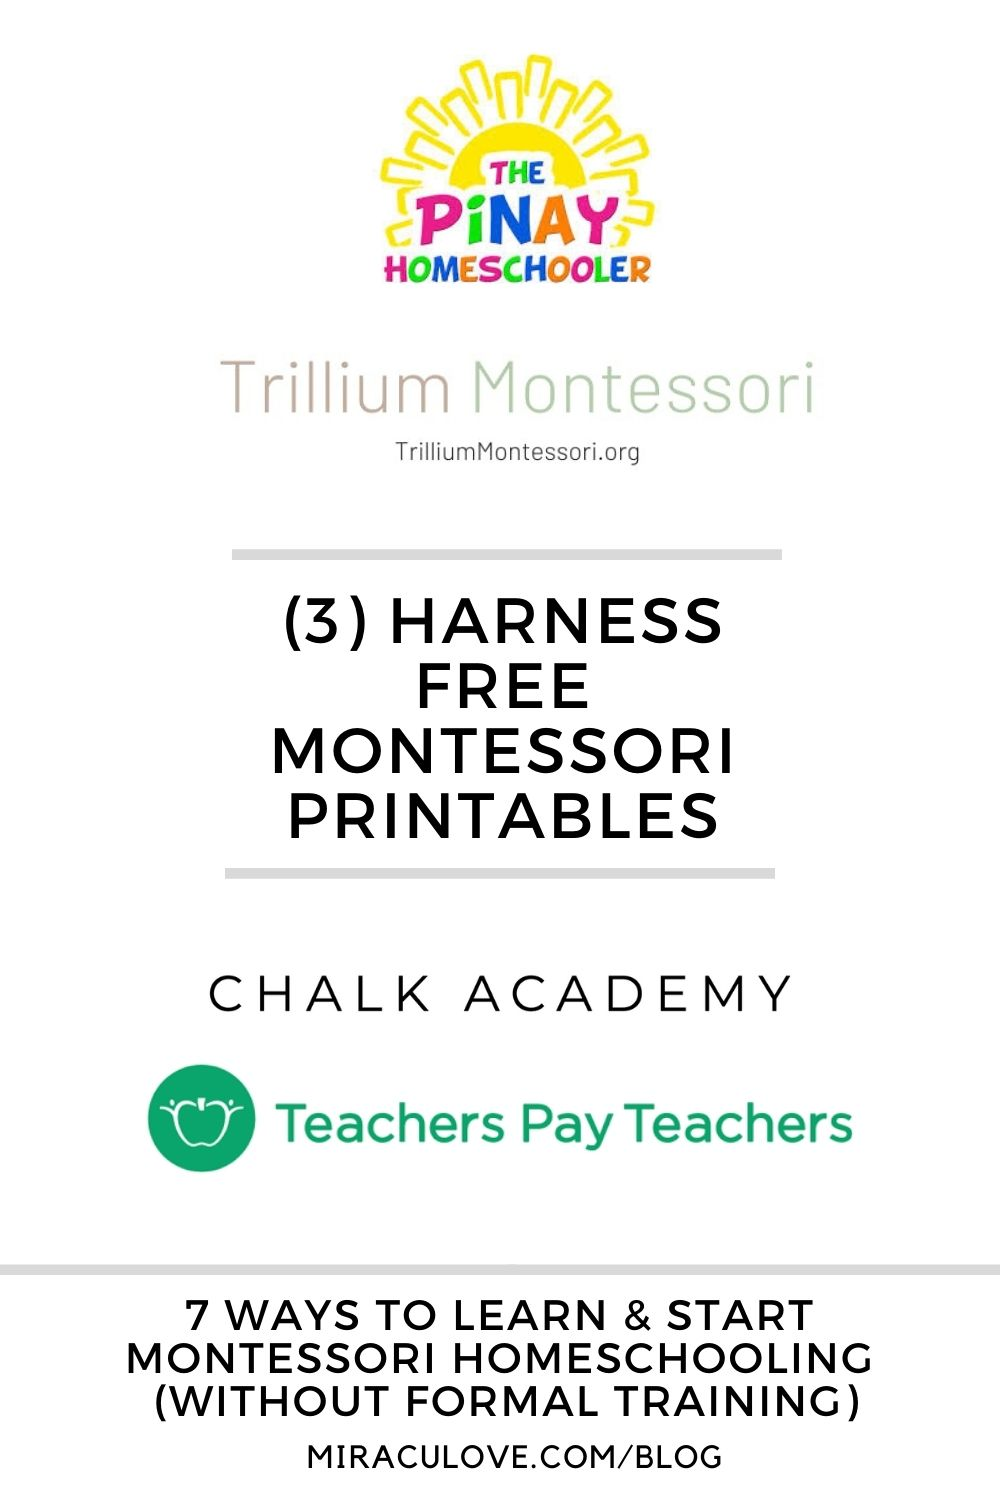 7 Ways to Learn & Start Montessori Homeschooling Without Formal Training